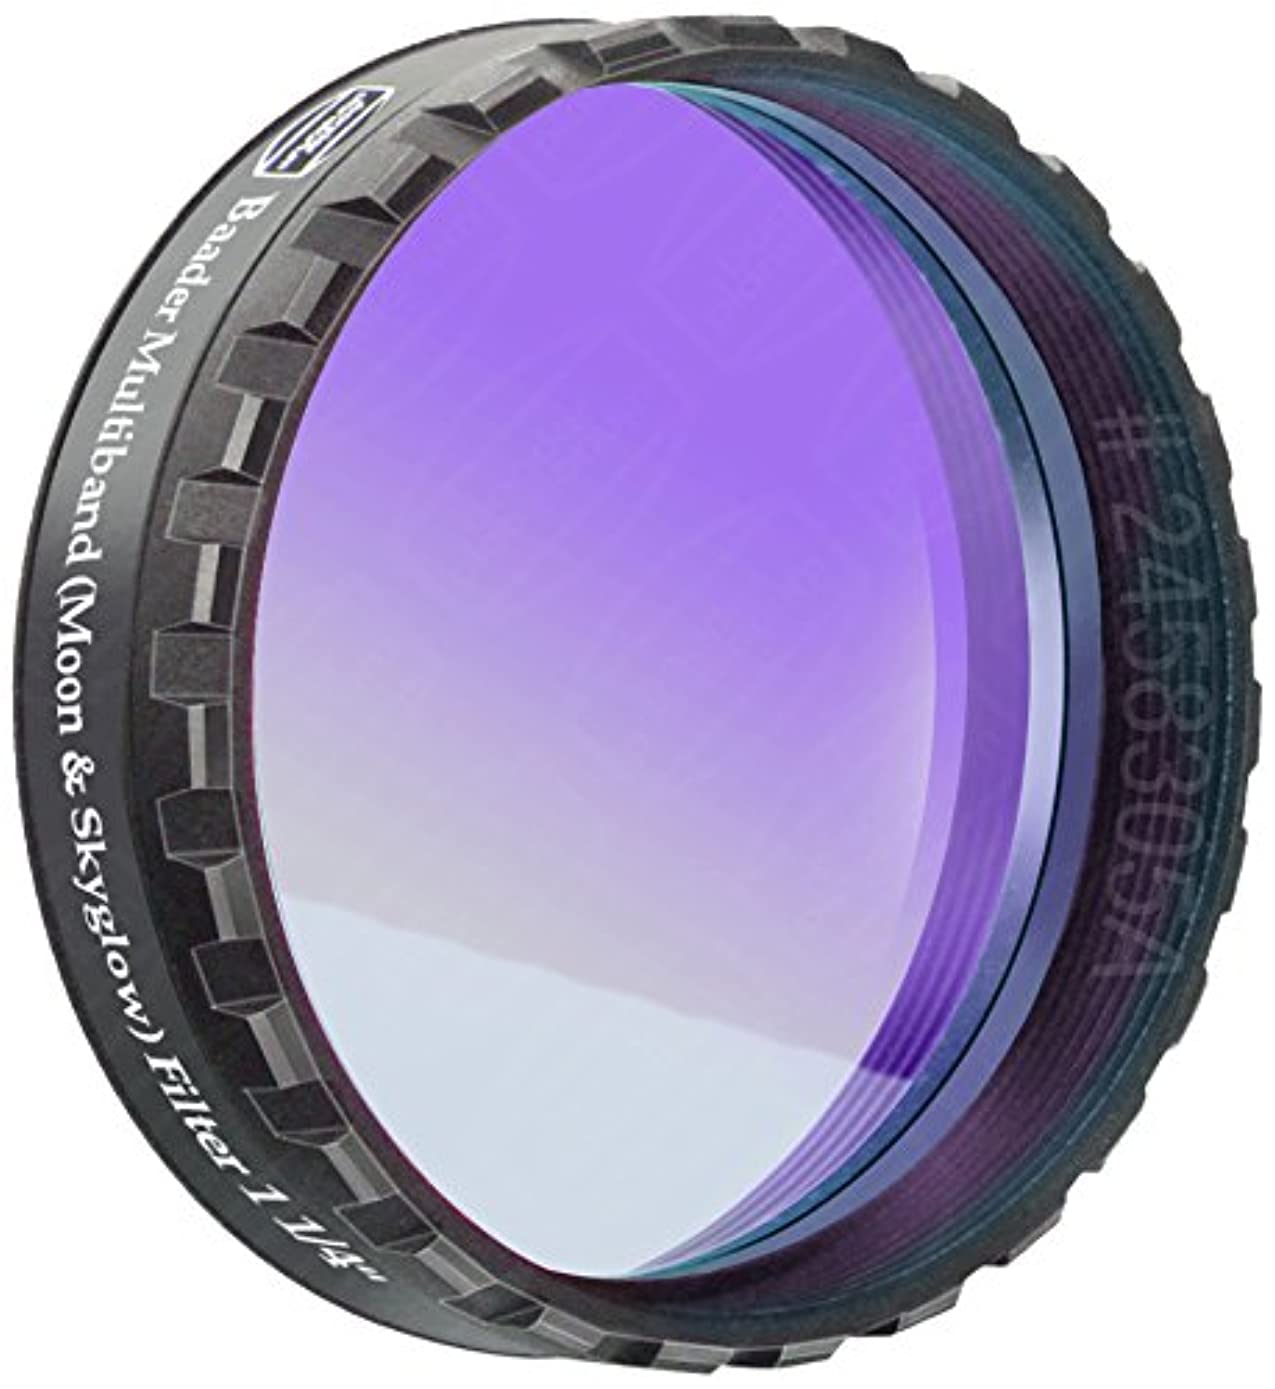 Baader Neodymium Moon & Skyglow Filter with IR Cut - 1.25